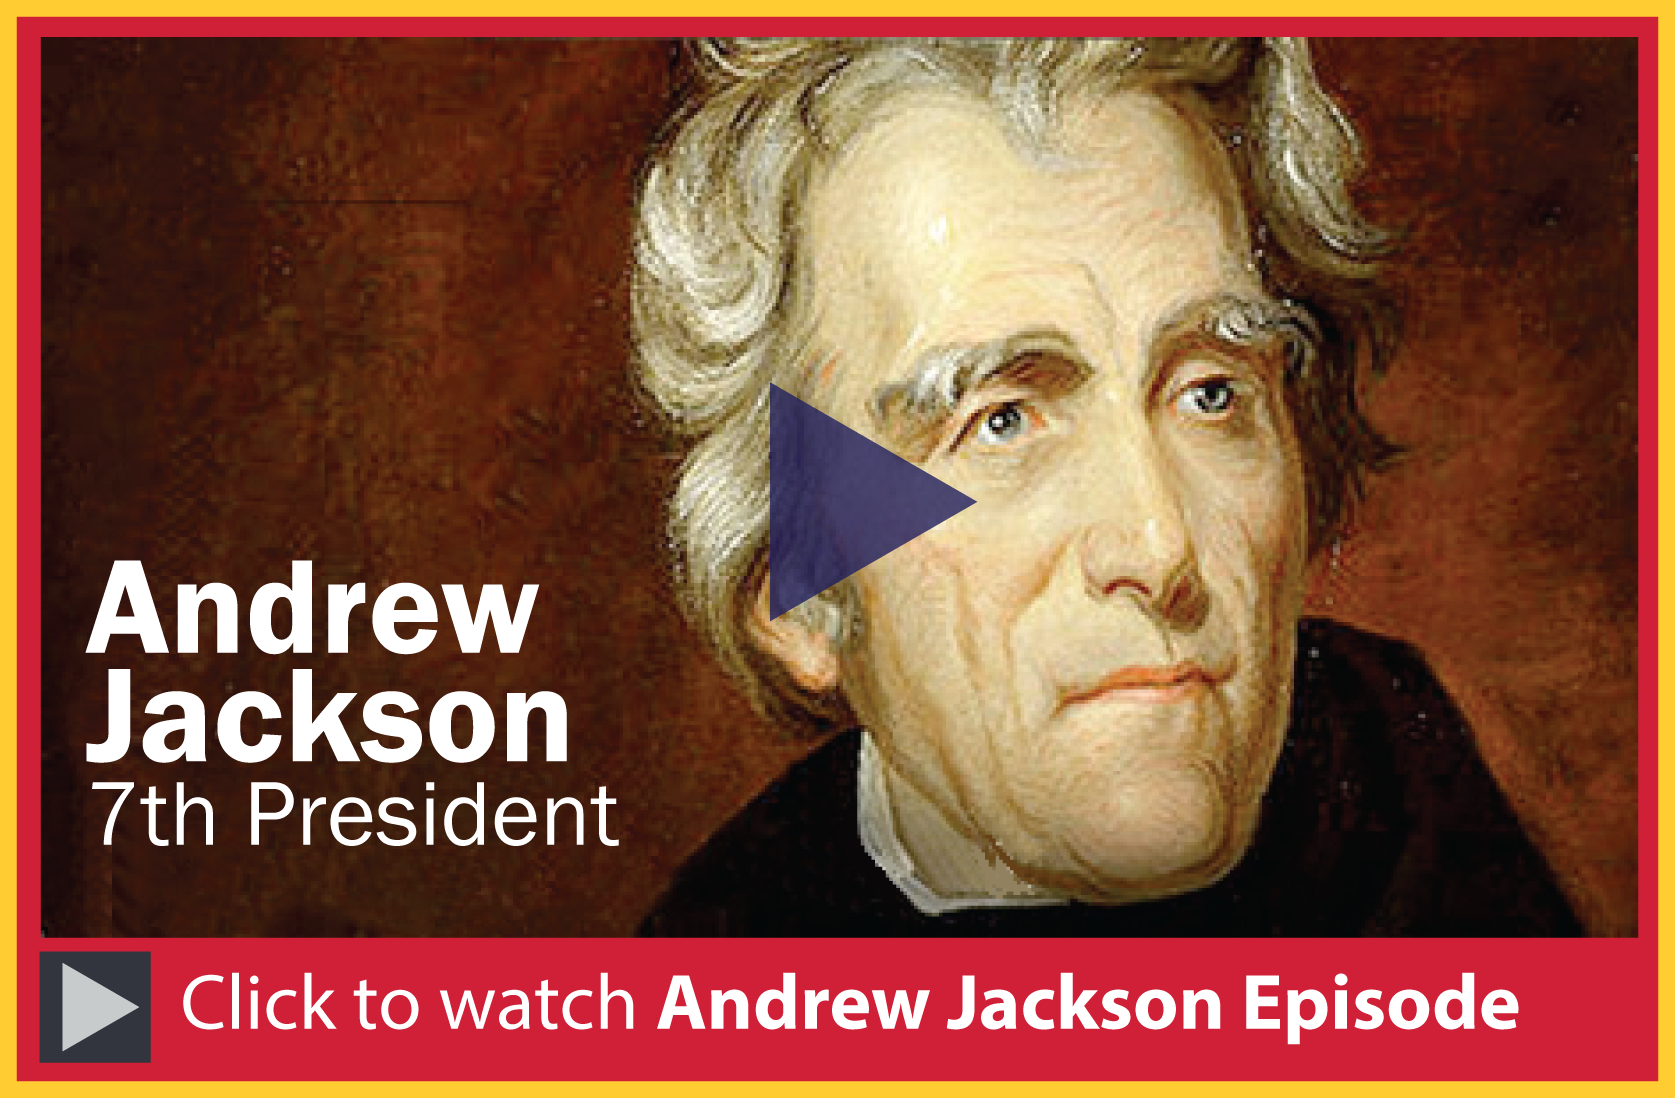 andrew jackson an ideal president for